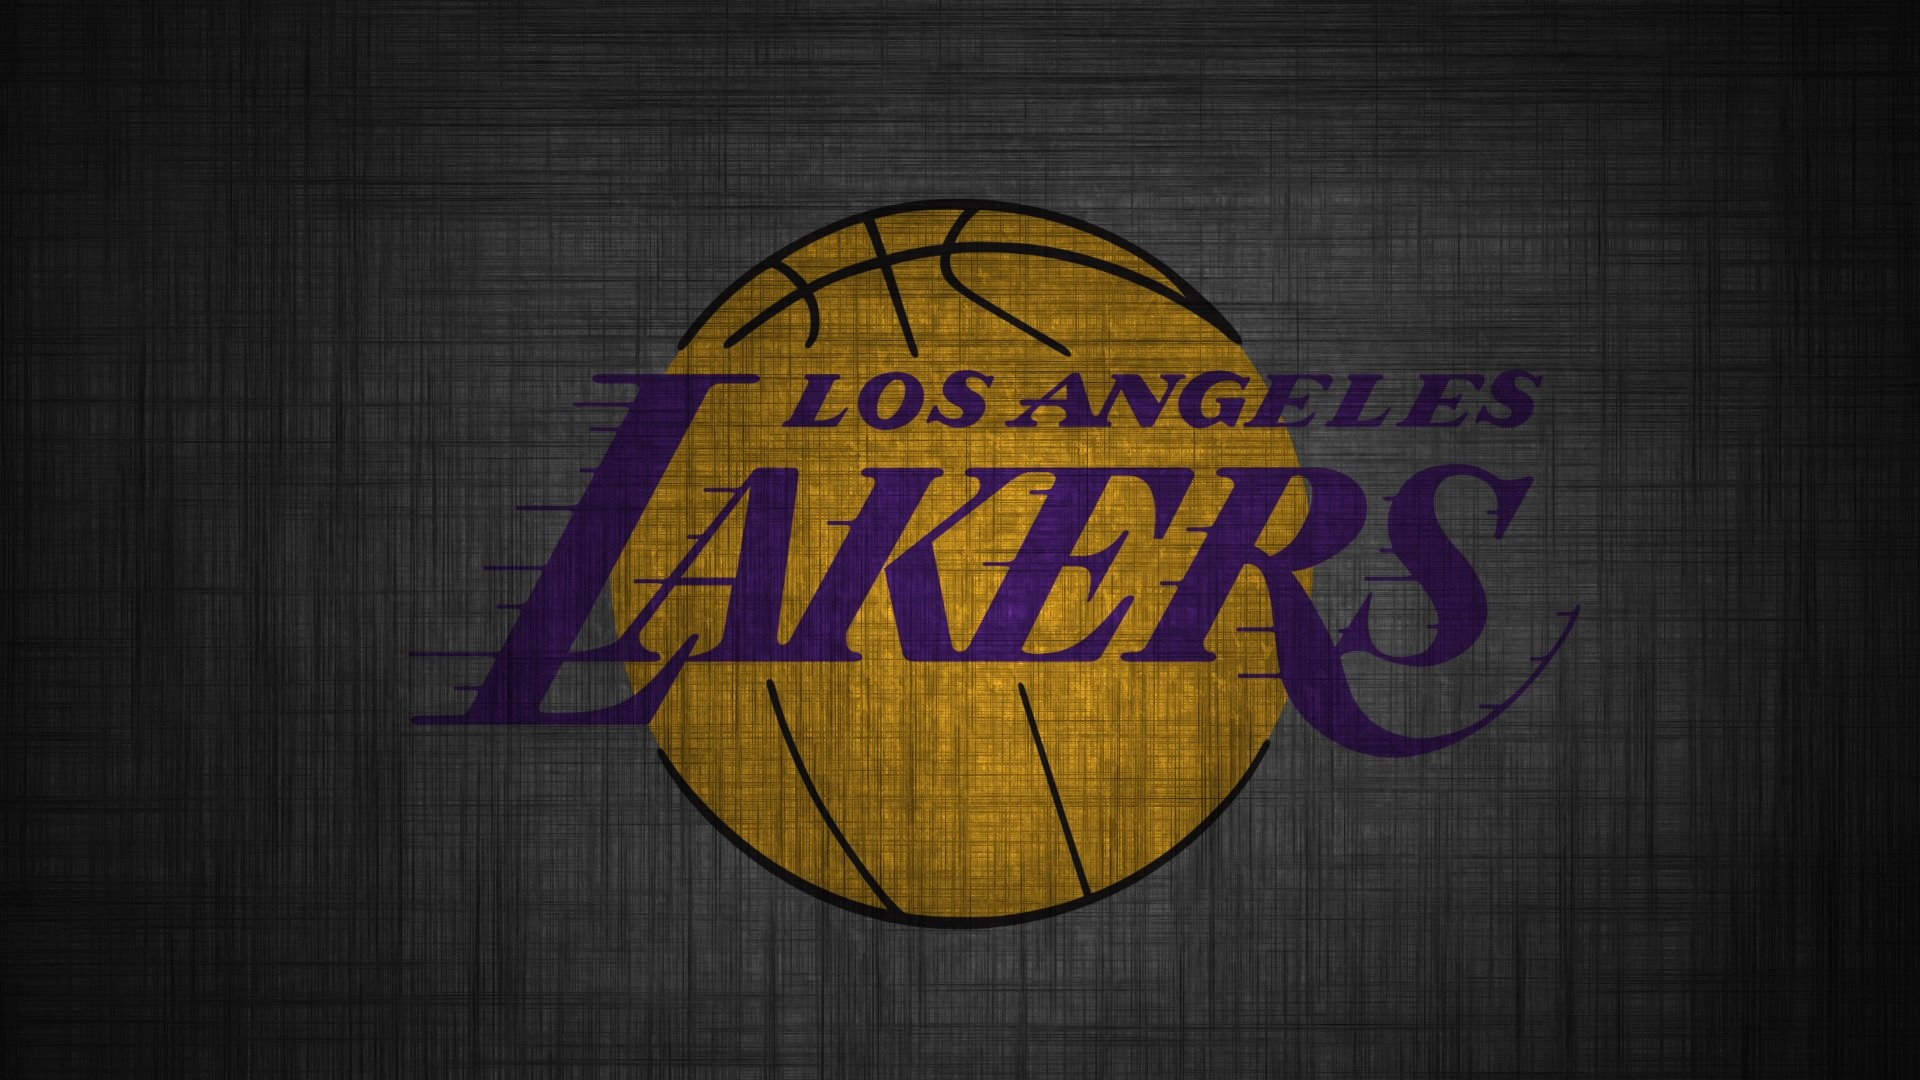 Lakers Wallpaper Images on | HD Wallpapers | Pinterest | Hd wallpaper and  Wallpaper